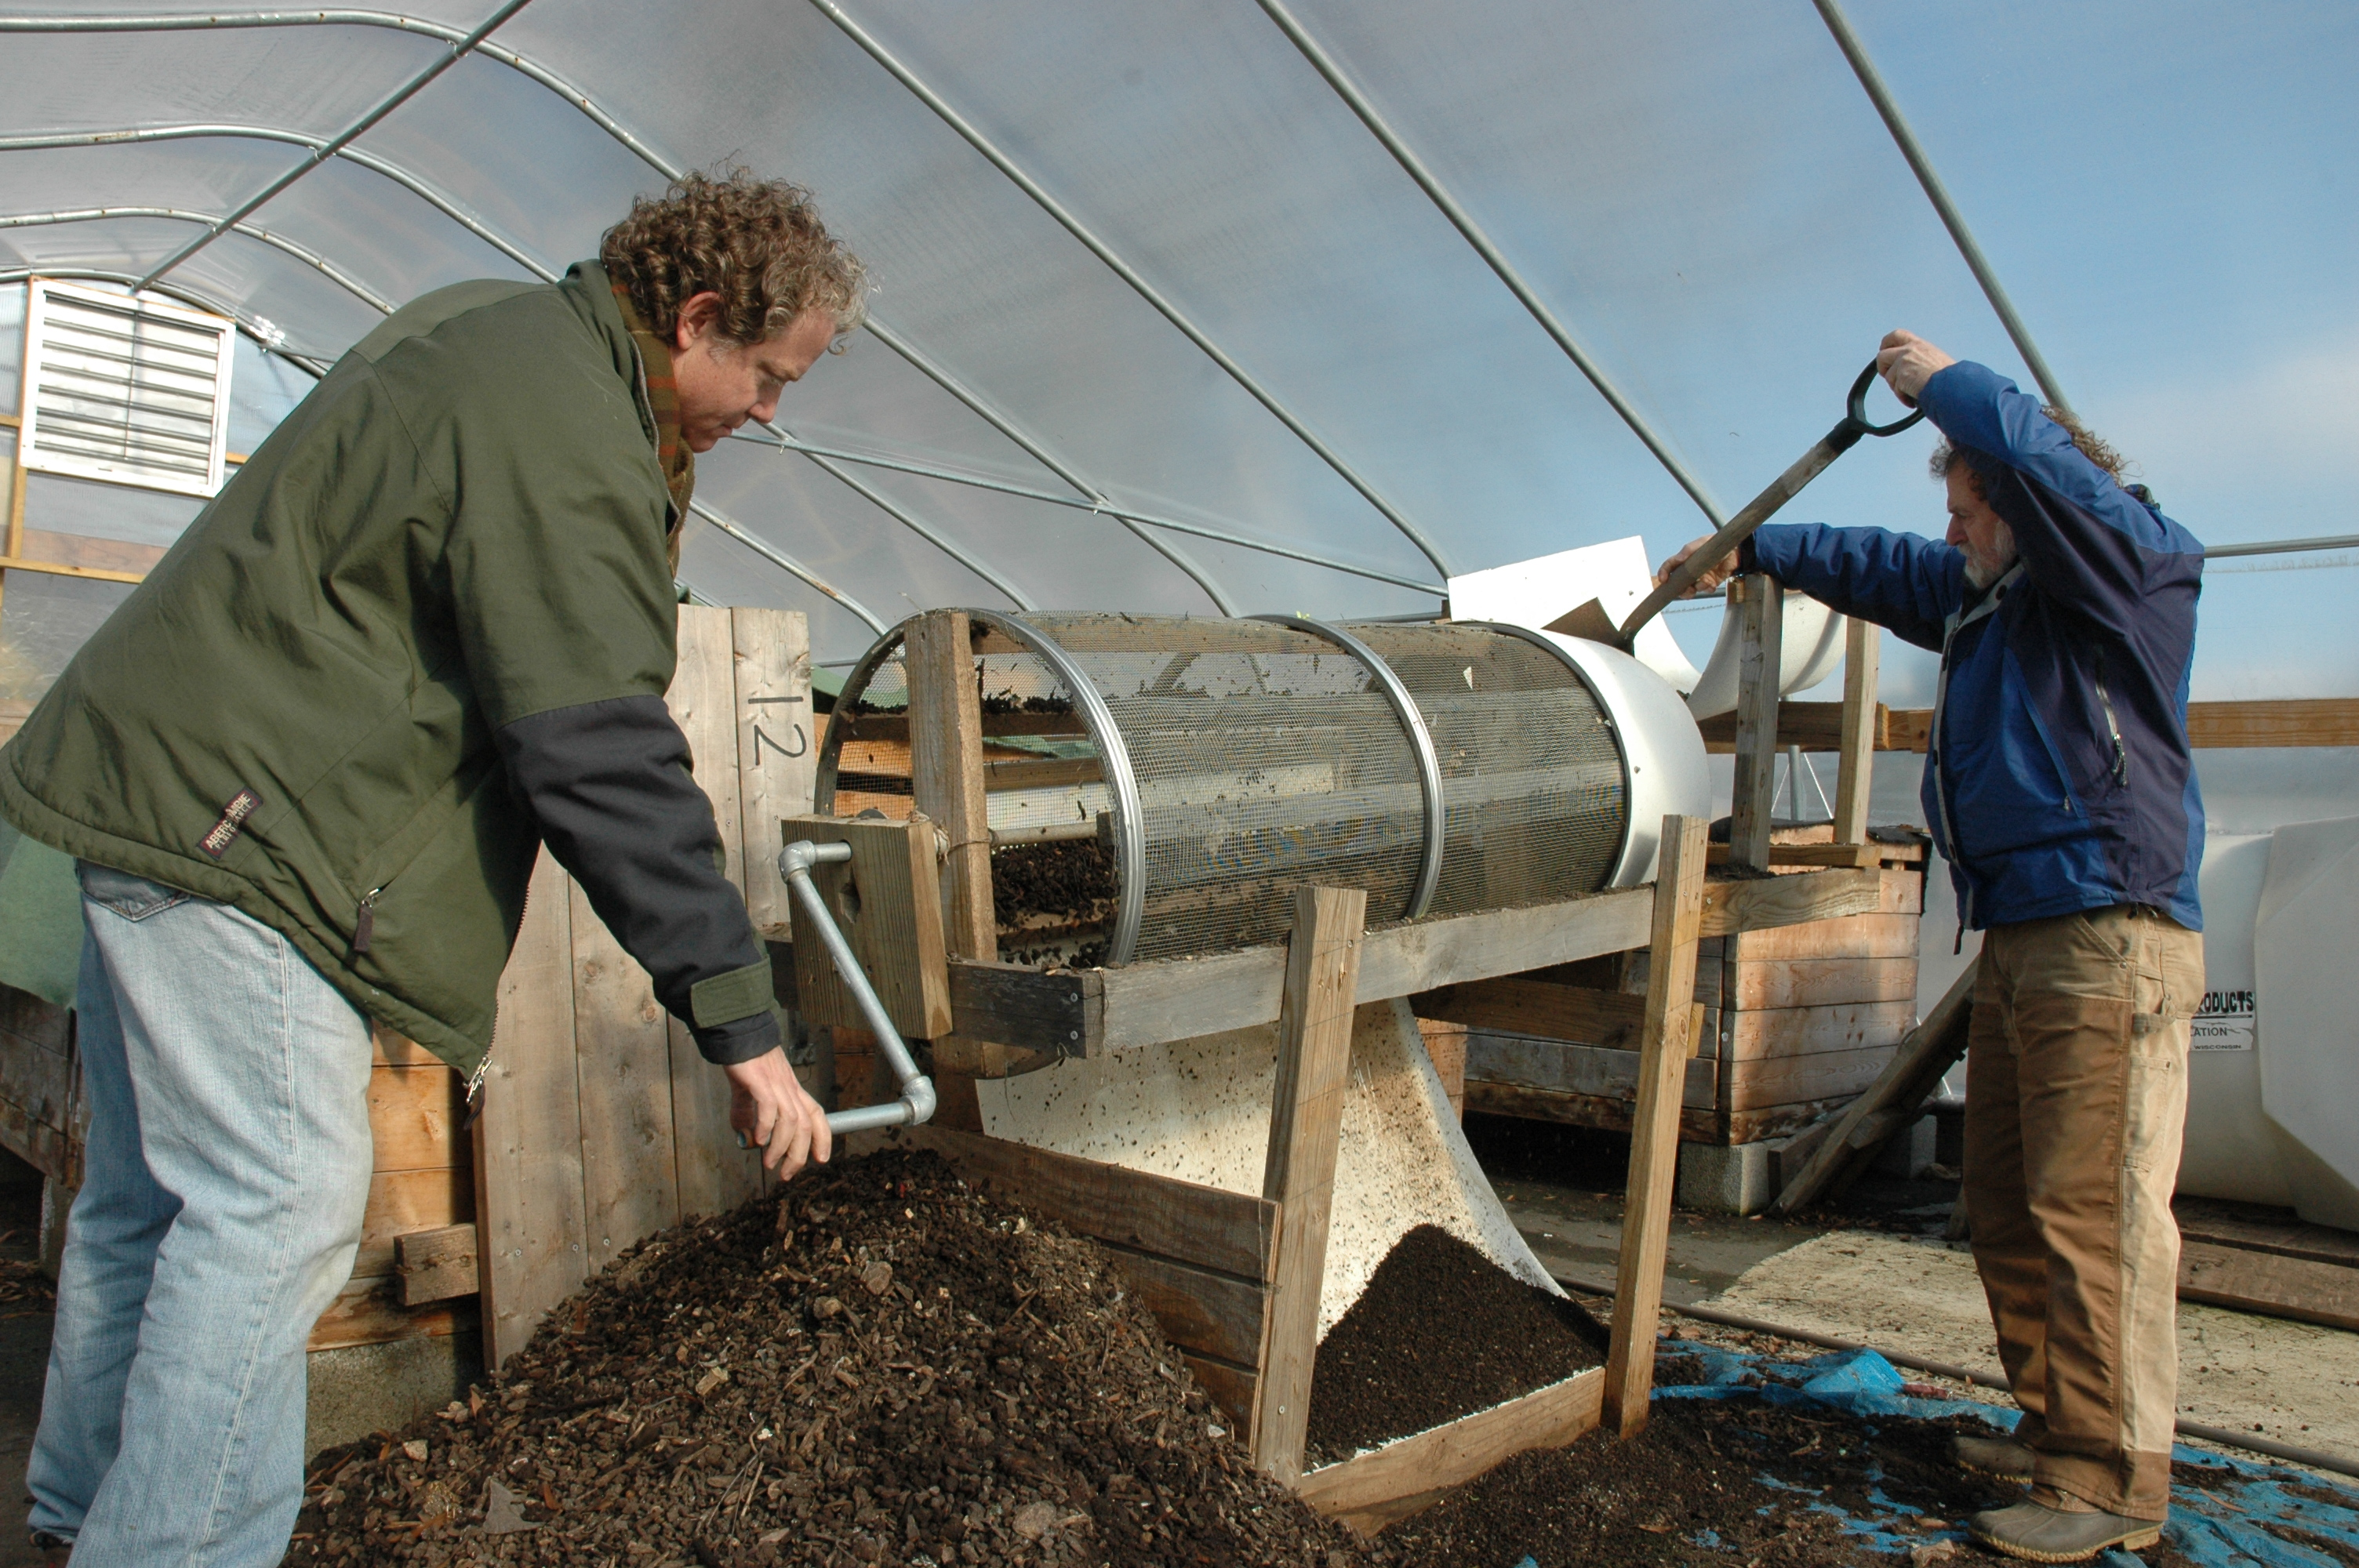 ECO City Farms staffers harvested materials at Community Forklift to build this compost sifter. Here, apprentice Matthew turns the crank, while senior technical adviser Benny Erez, right, shovels compost into the device.